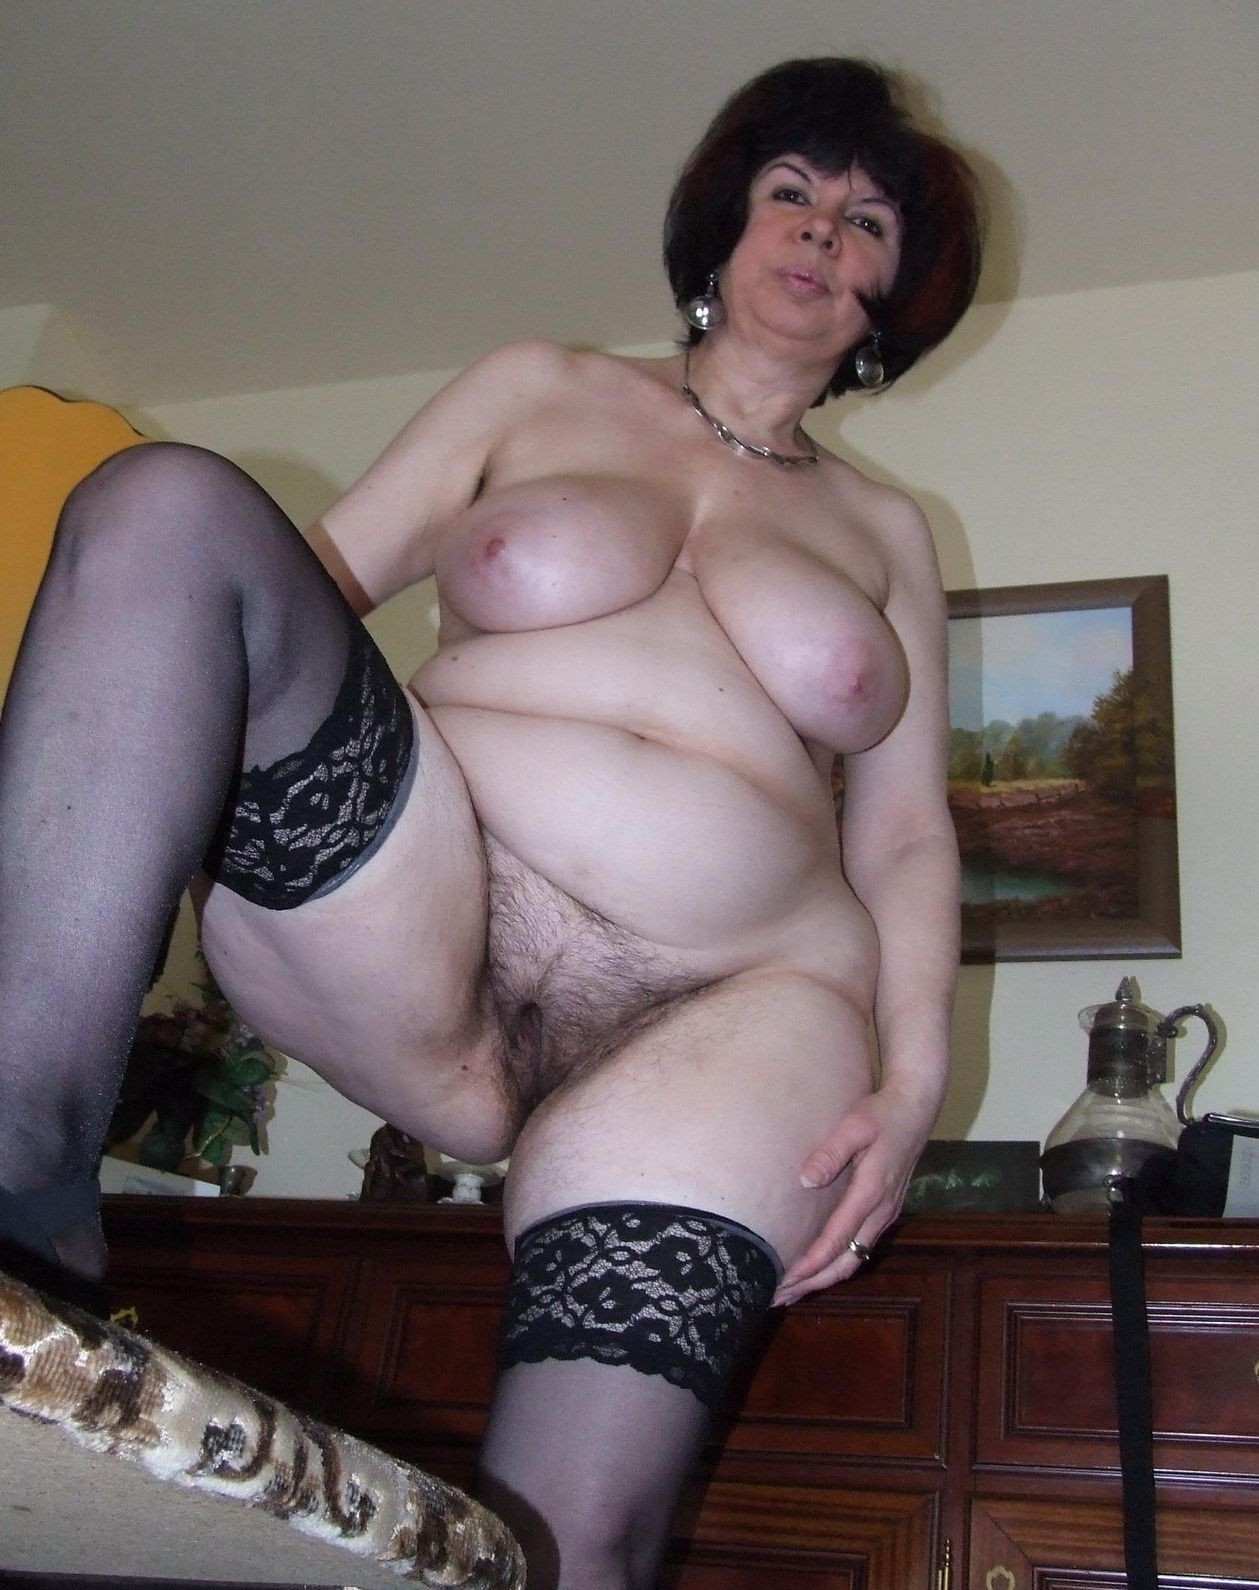 Granny Nudist Pics Full 71